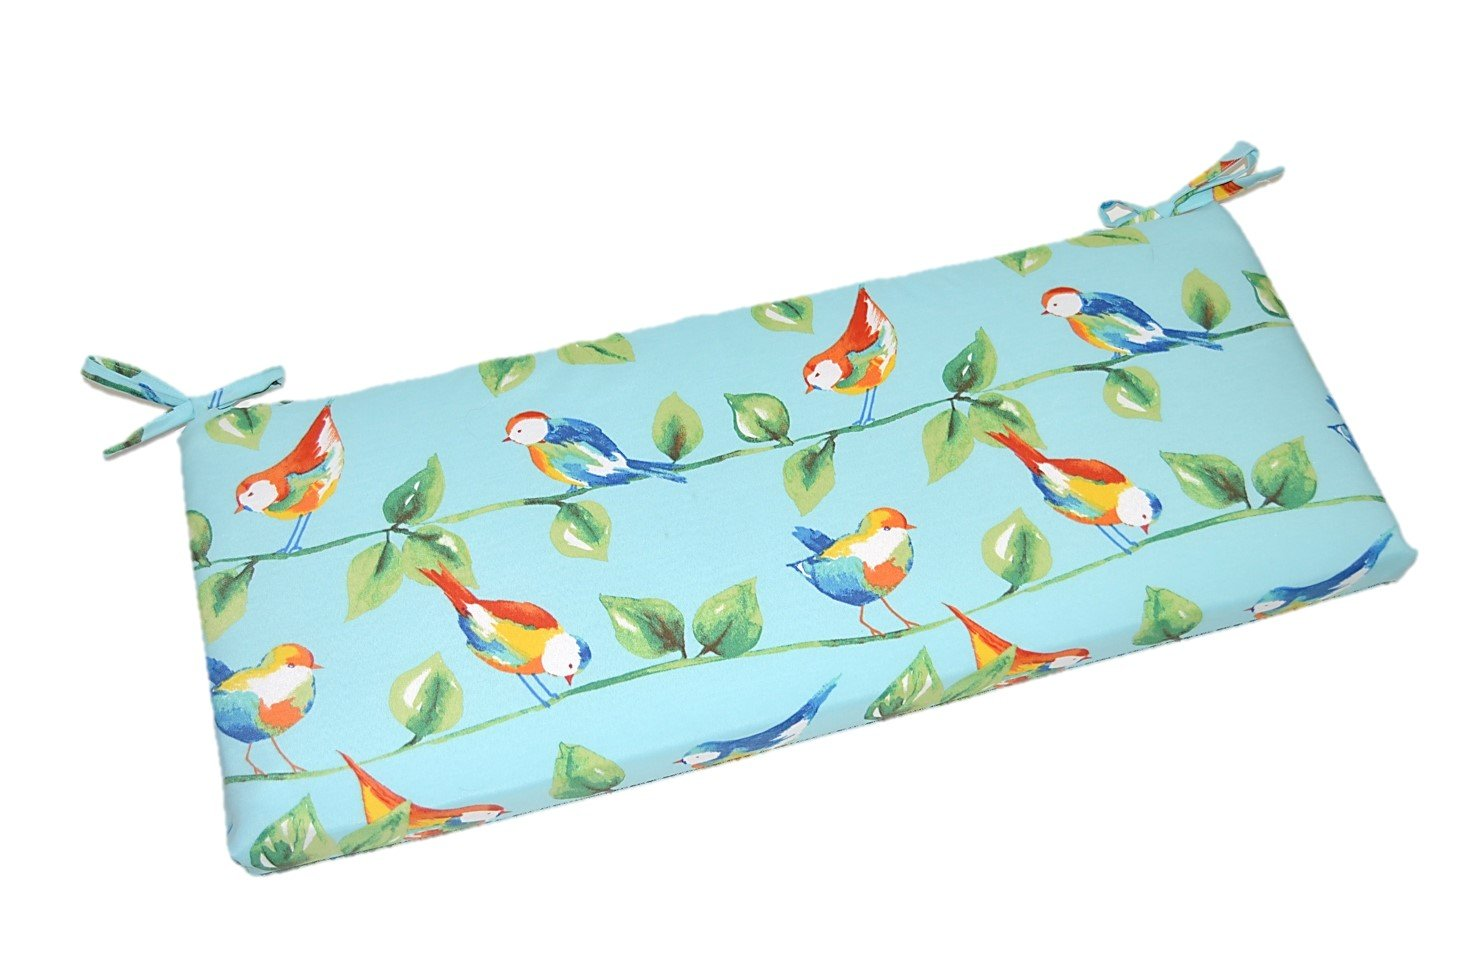 Indoor / Outdoor Richloom Solar Outdoor Sky Blue Curious Birds 2'' Thick Foam Swing / Bench / Glider Cushion with Ties and Zipper - Choose Size (41'' x 20'')